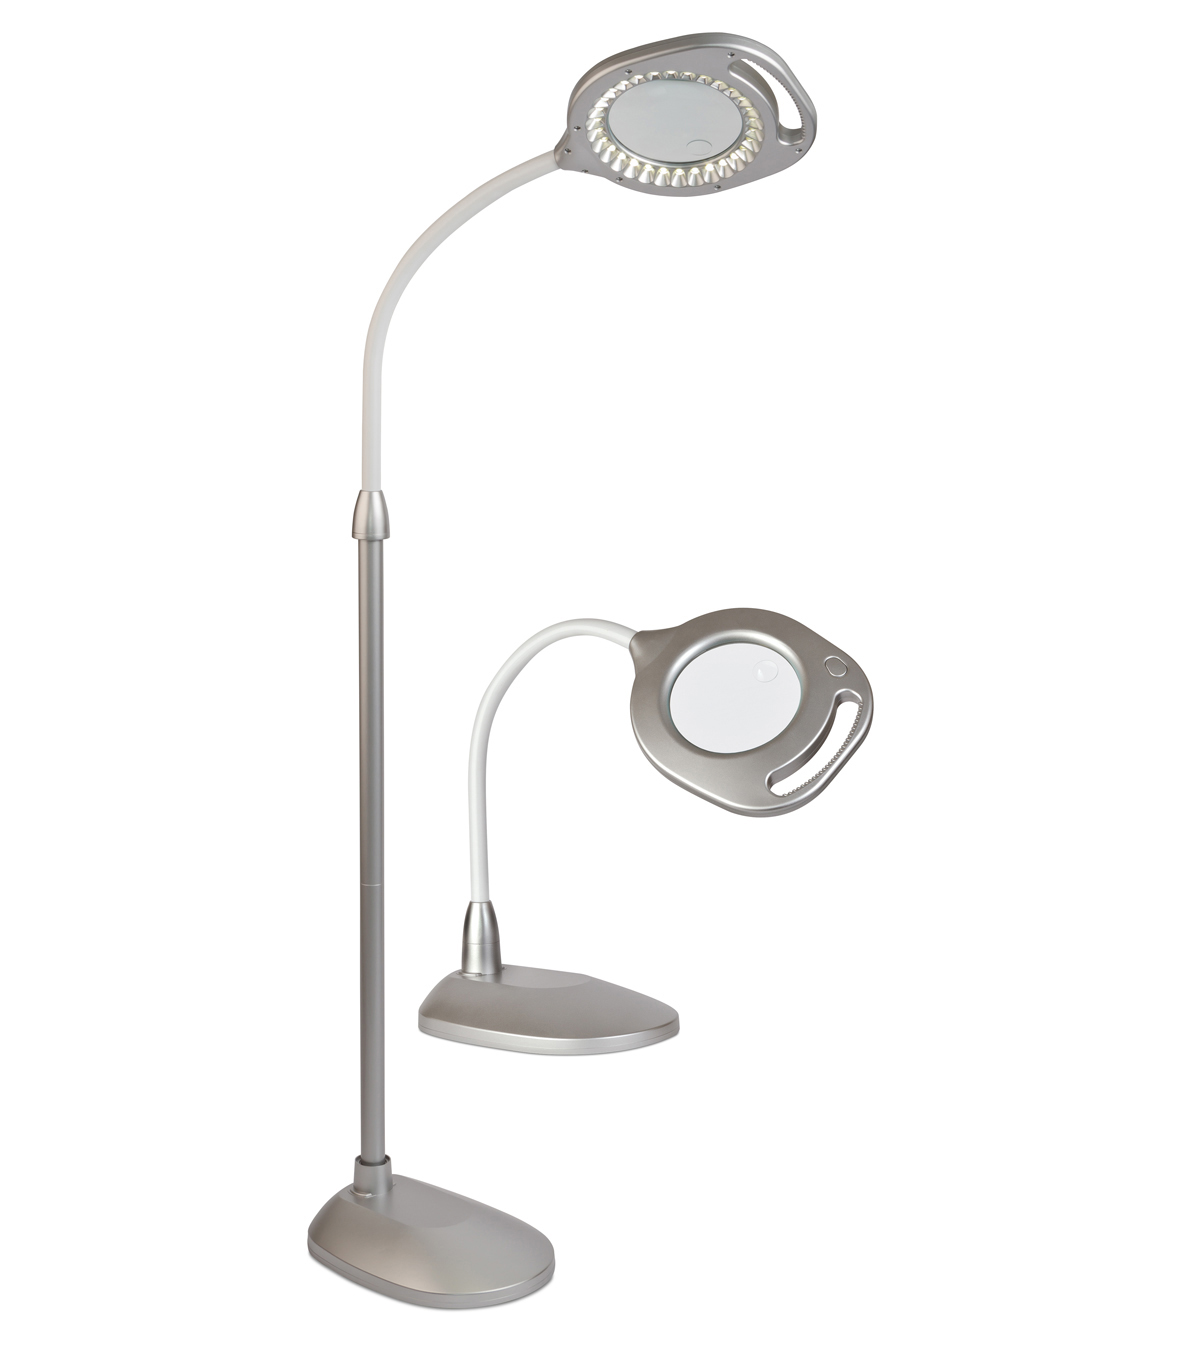 OttLite 2 in 1 LED Magnifier Floor And Table Lamp